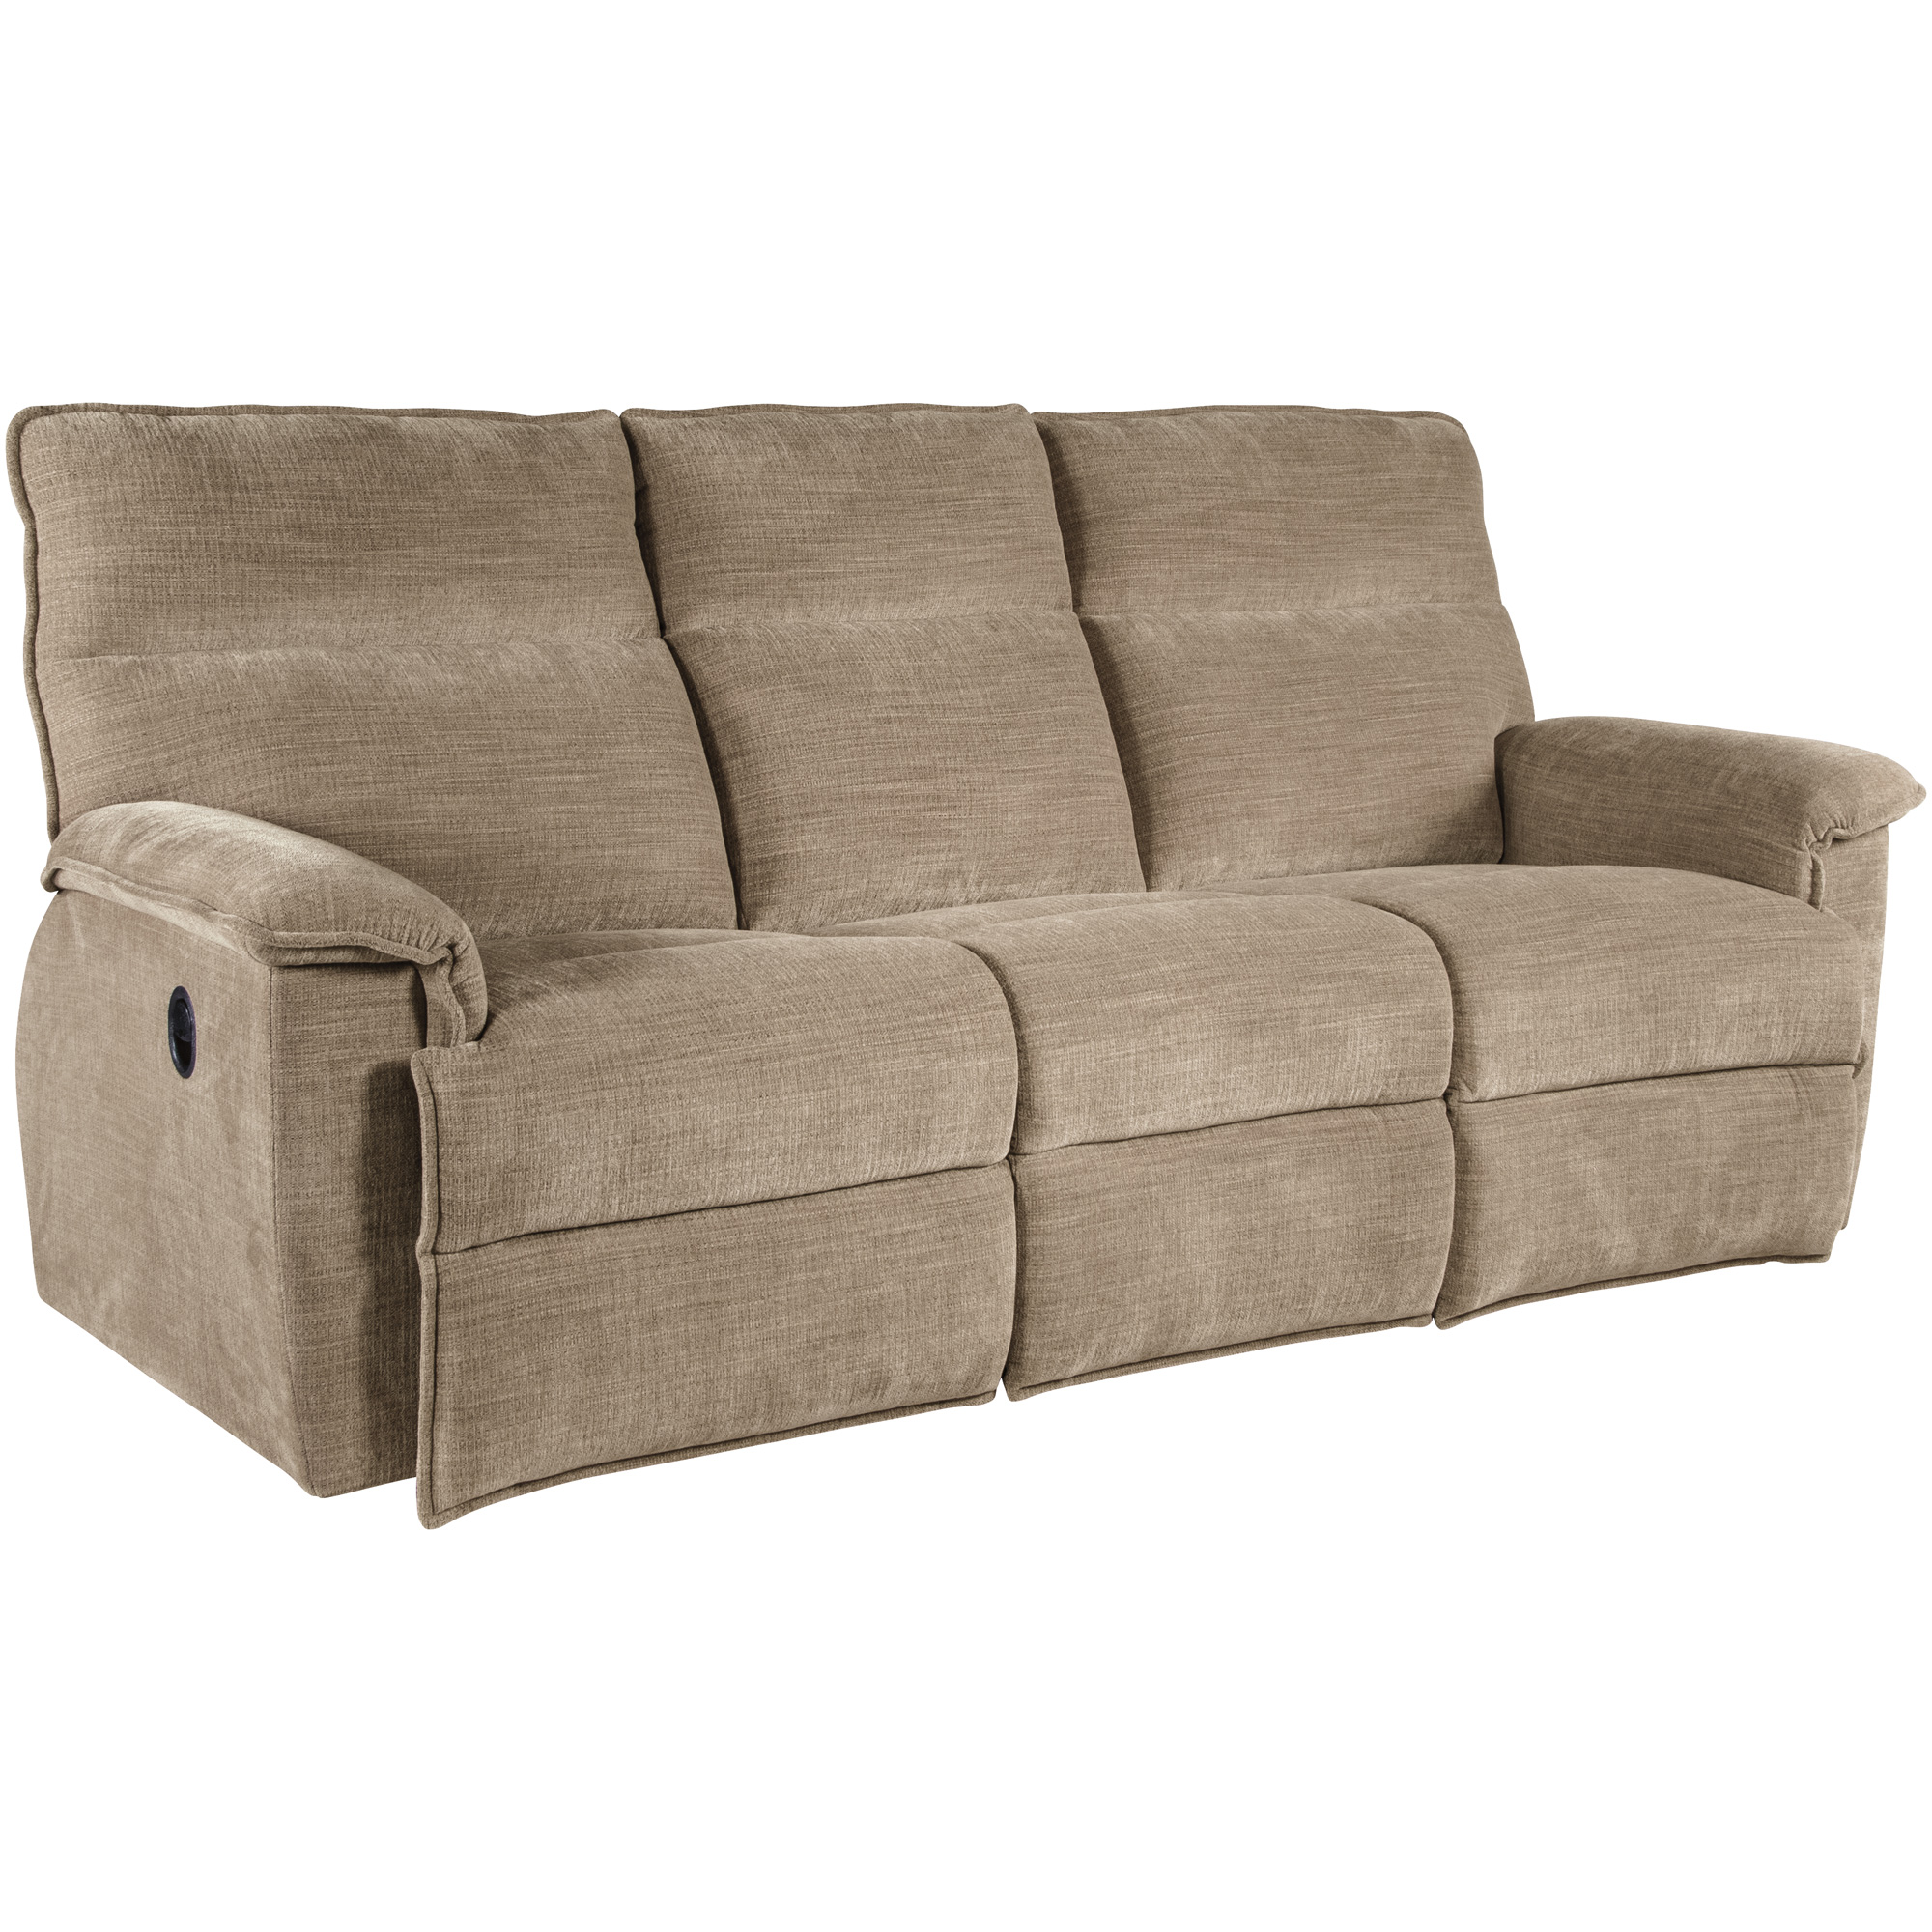 La-Z-Boy | Jay Tan Reclining Sofa